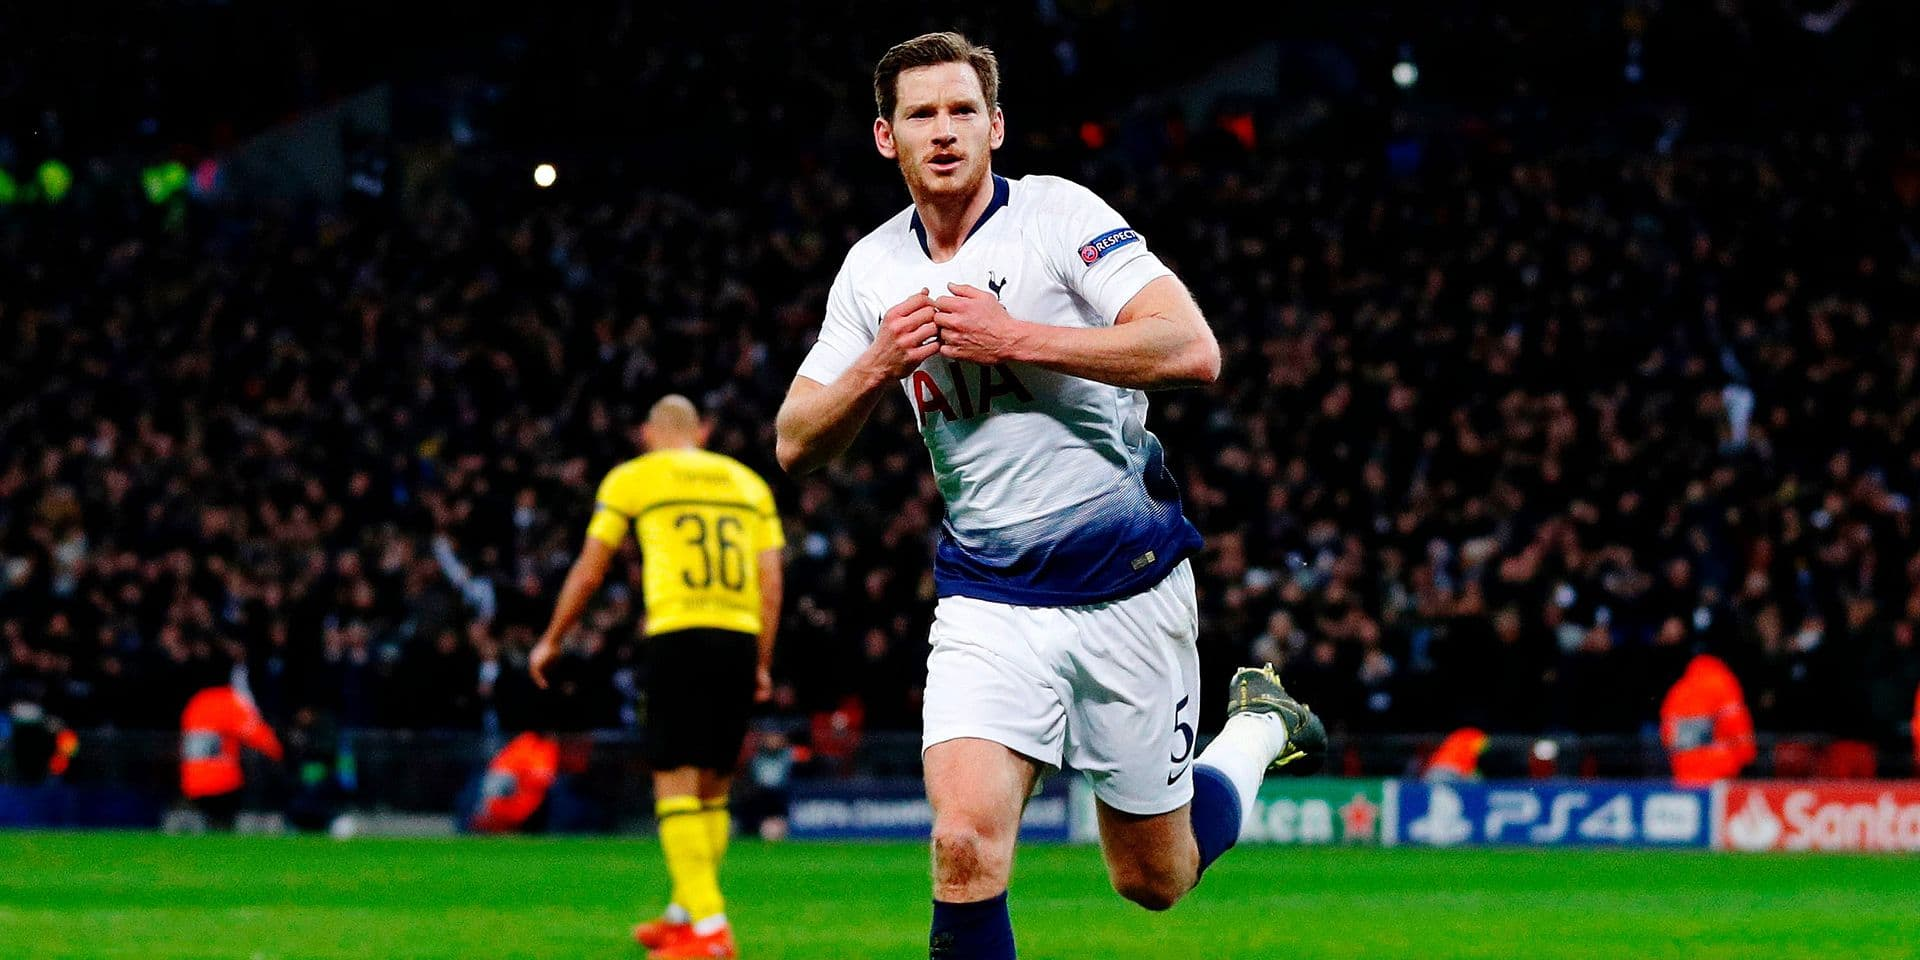 Tottenham Hotspur's Belgian defender Jan Vertonghen celebrates after scoring their second goal during the UEFA Champions League round of 16 first leg football match between Tottenham Hotspur and Borussia Dortmund at Wembley Stadium in London on February 13, 2019. (Photo by Adrian DENNIS / AFP)